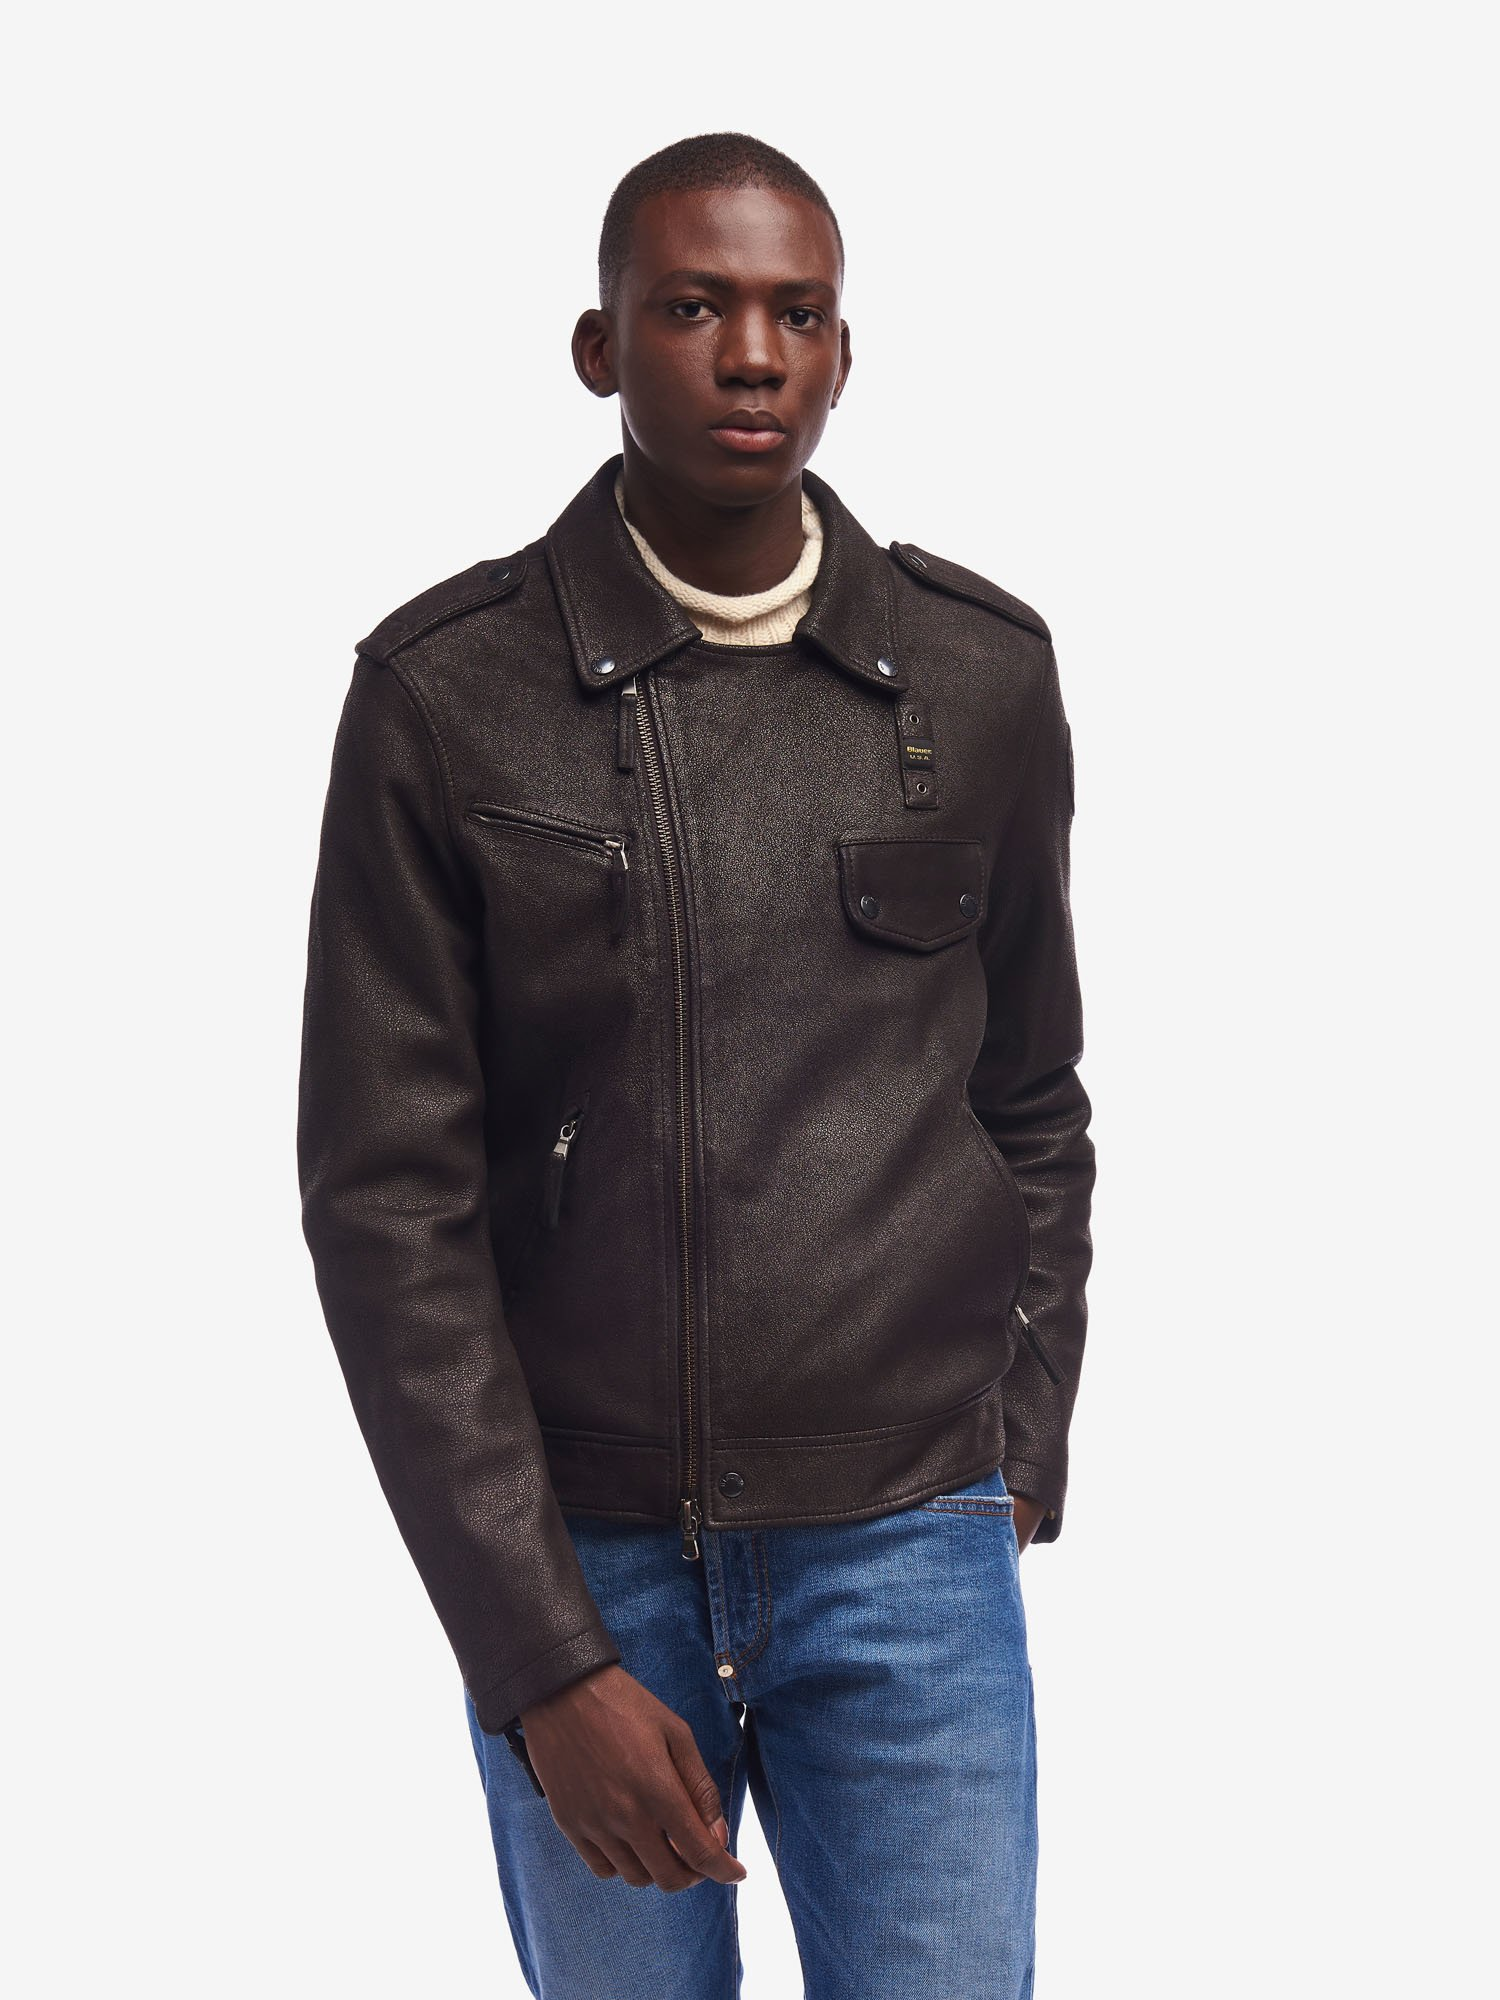 SIMPSON RUGGED LEATHER JACKET - Blauer